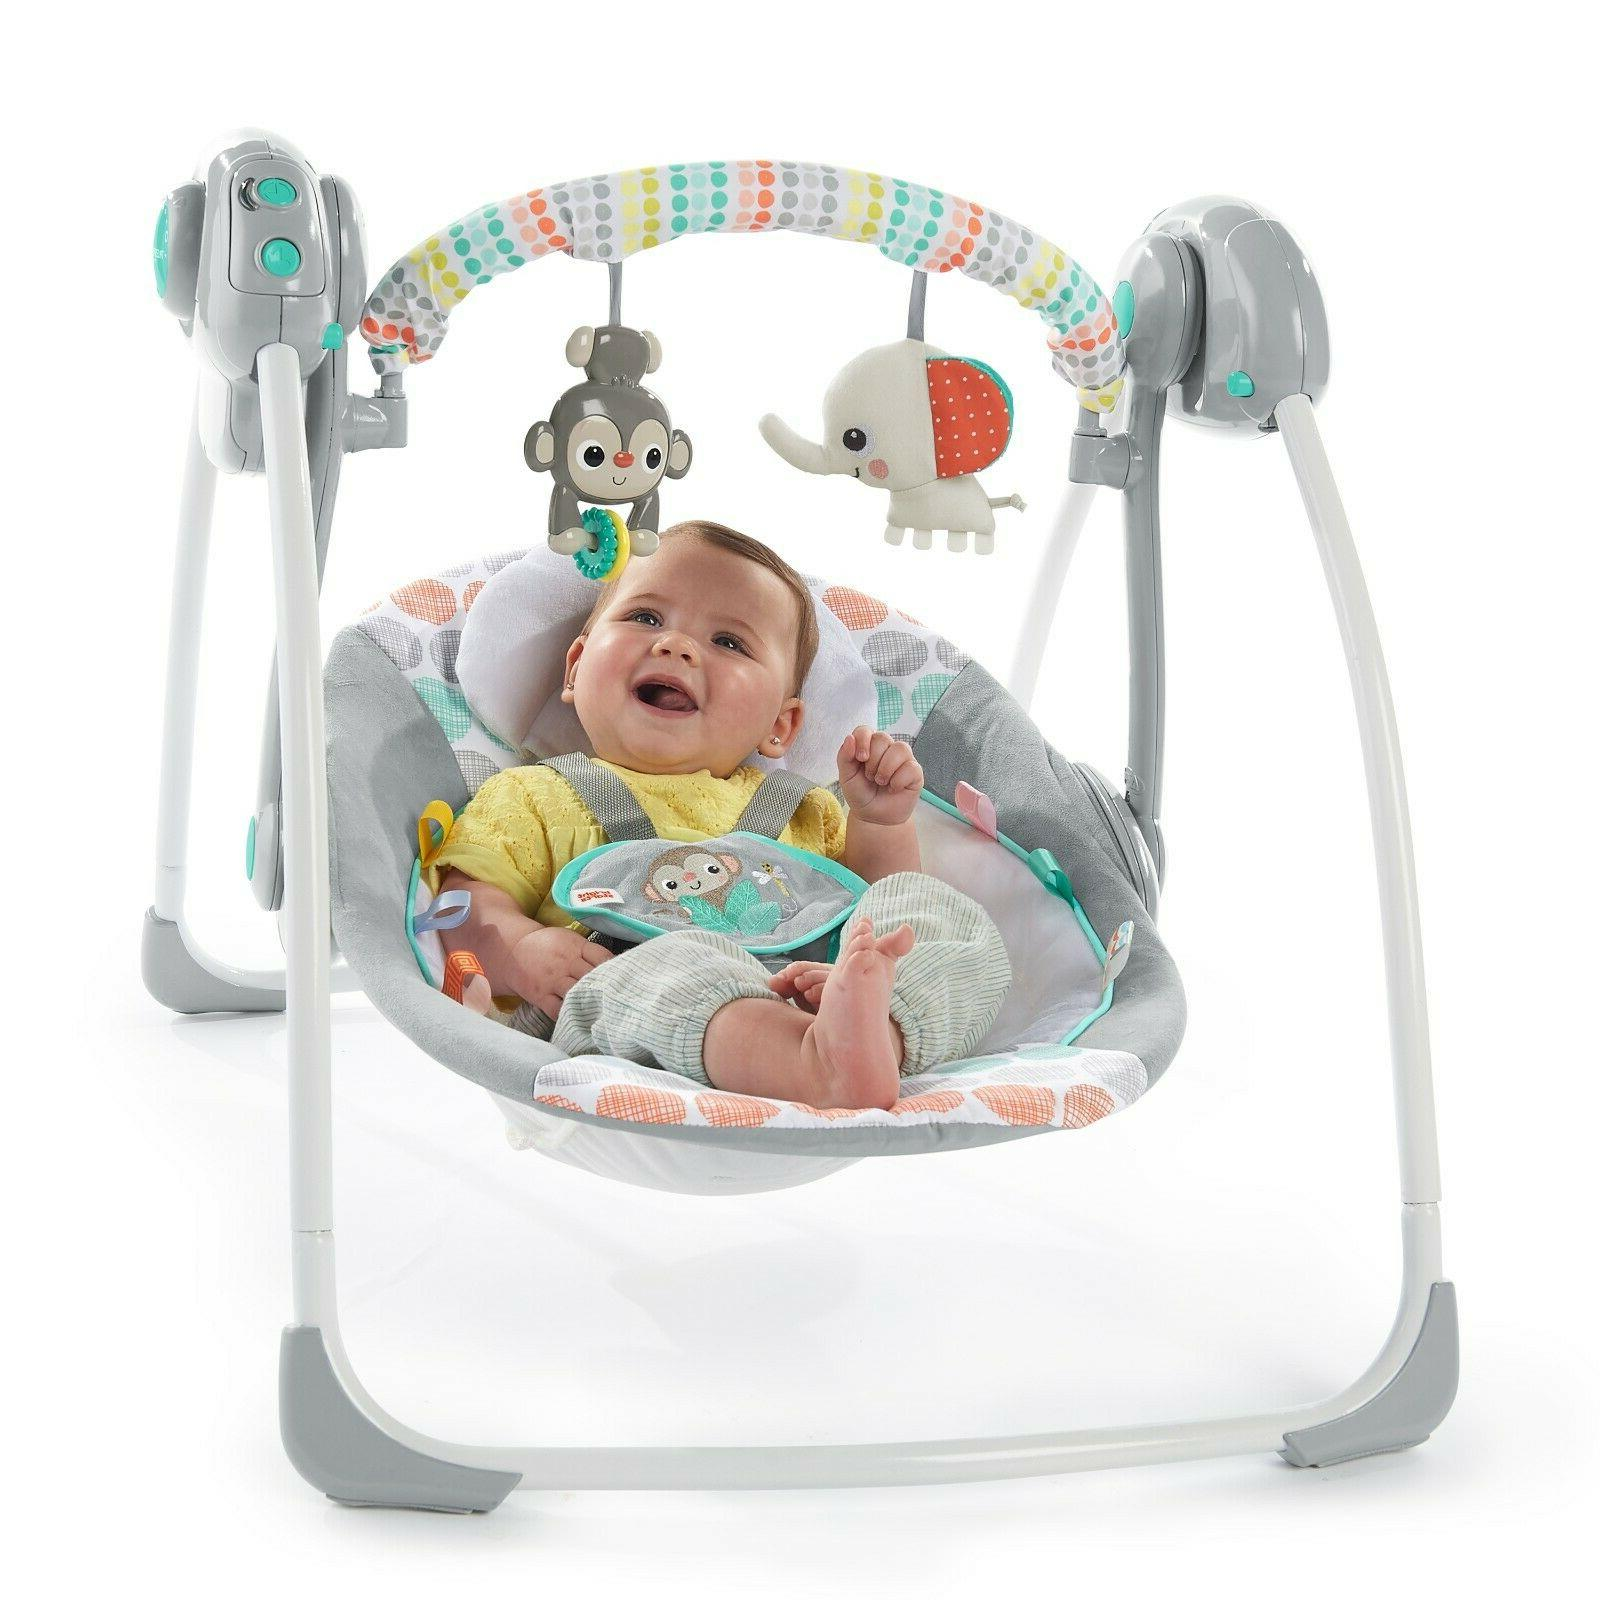 Bright Starts Whimsical Wild Portable Swing Brand New! Infan